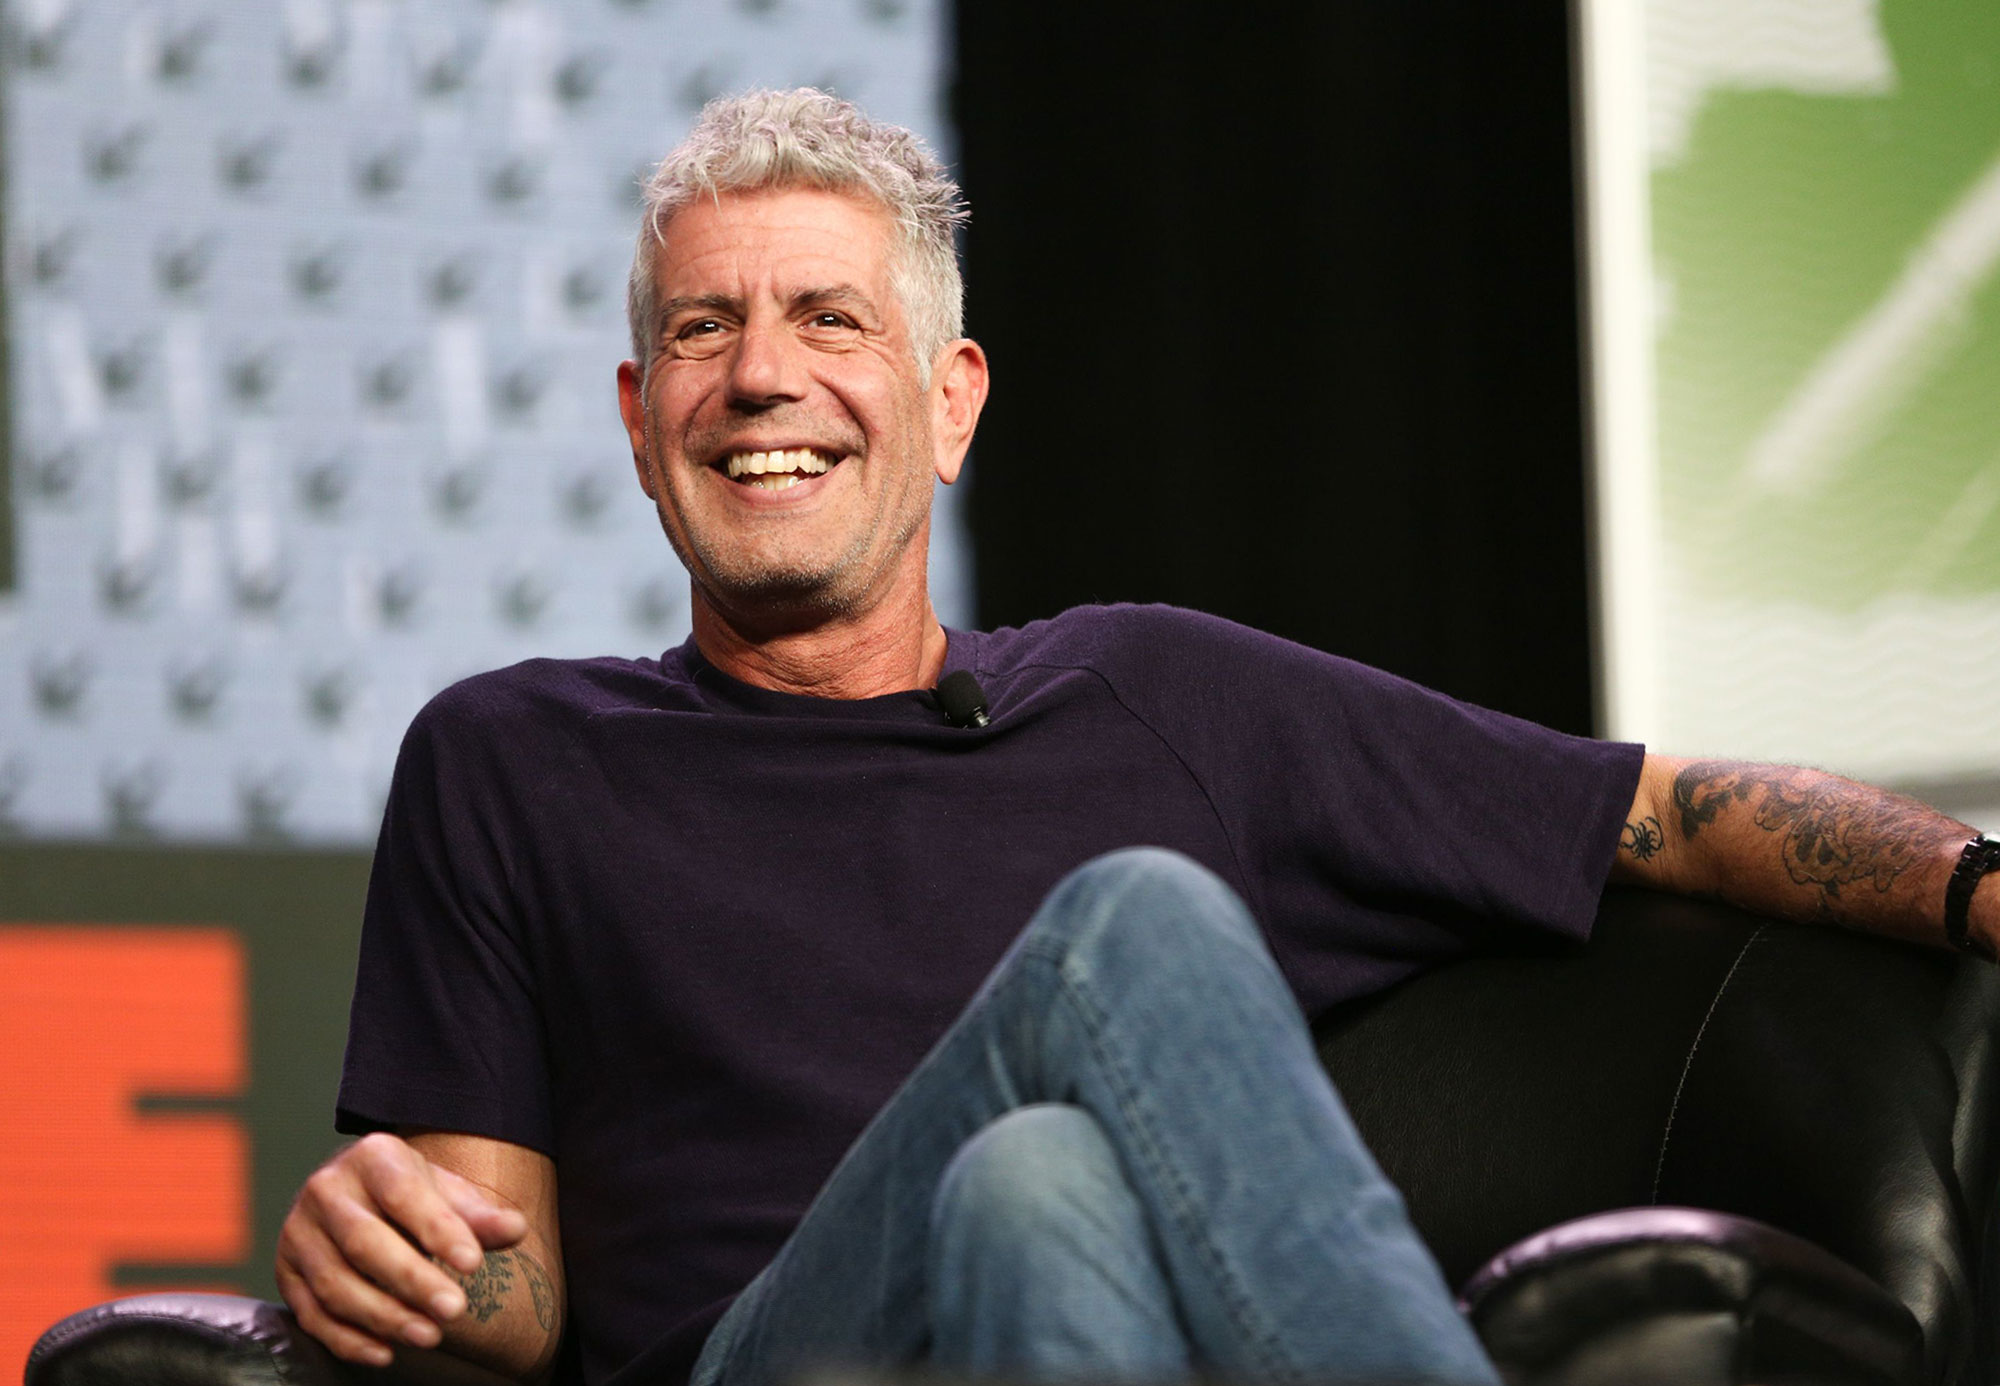 anthony-bourdain-131.jpg